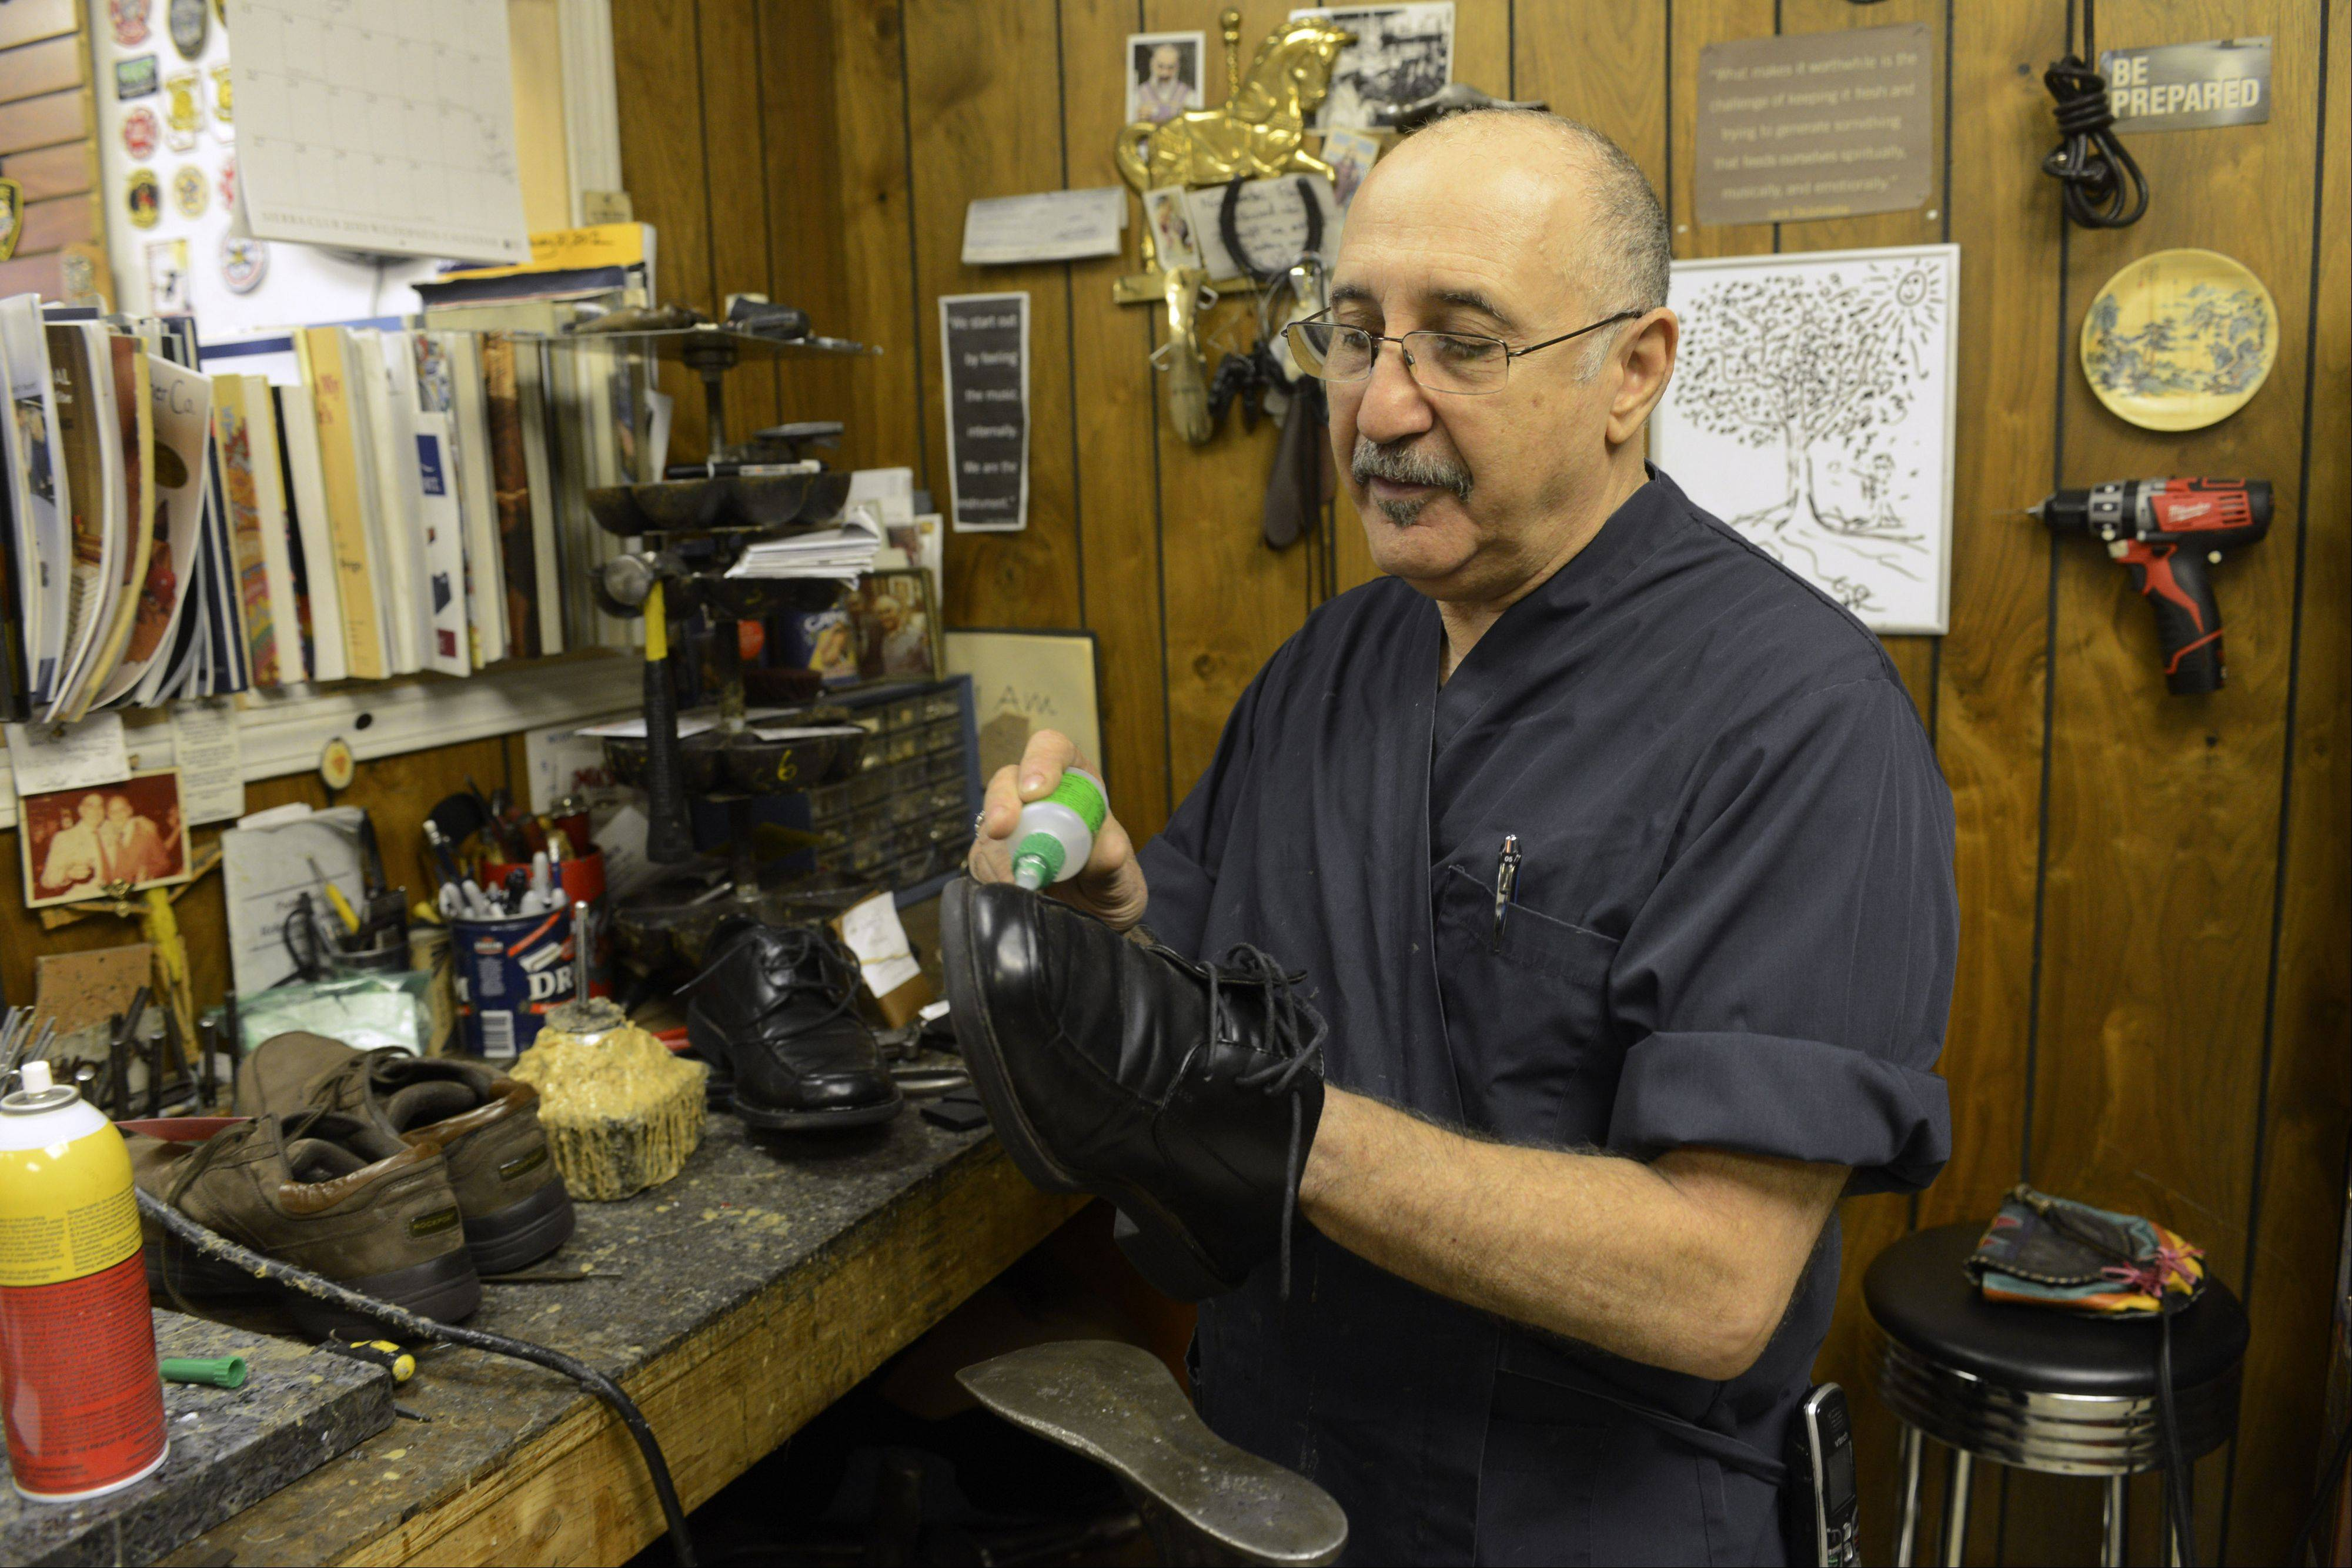 Larry DeAngelo, owner of Al's Shoe Service, said he likes his location on Prospect Avenue.